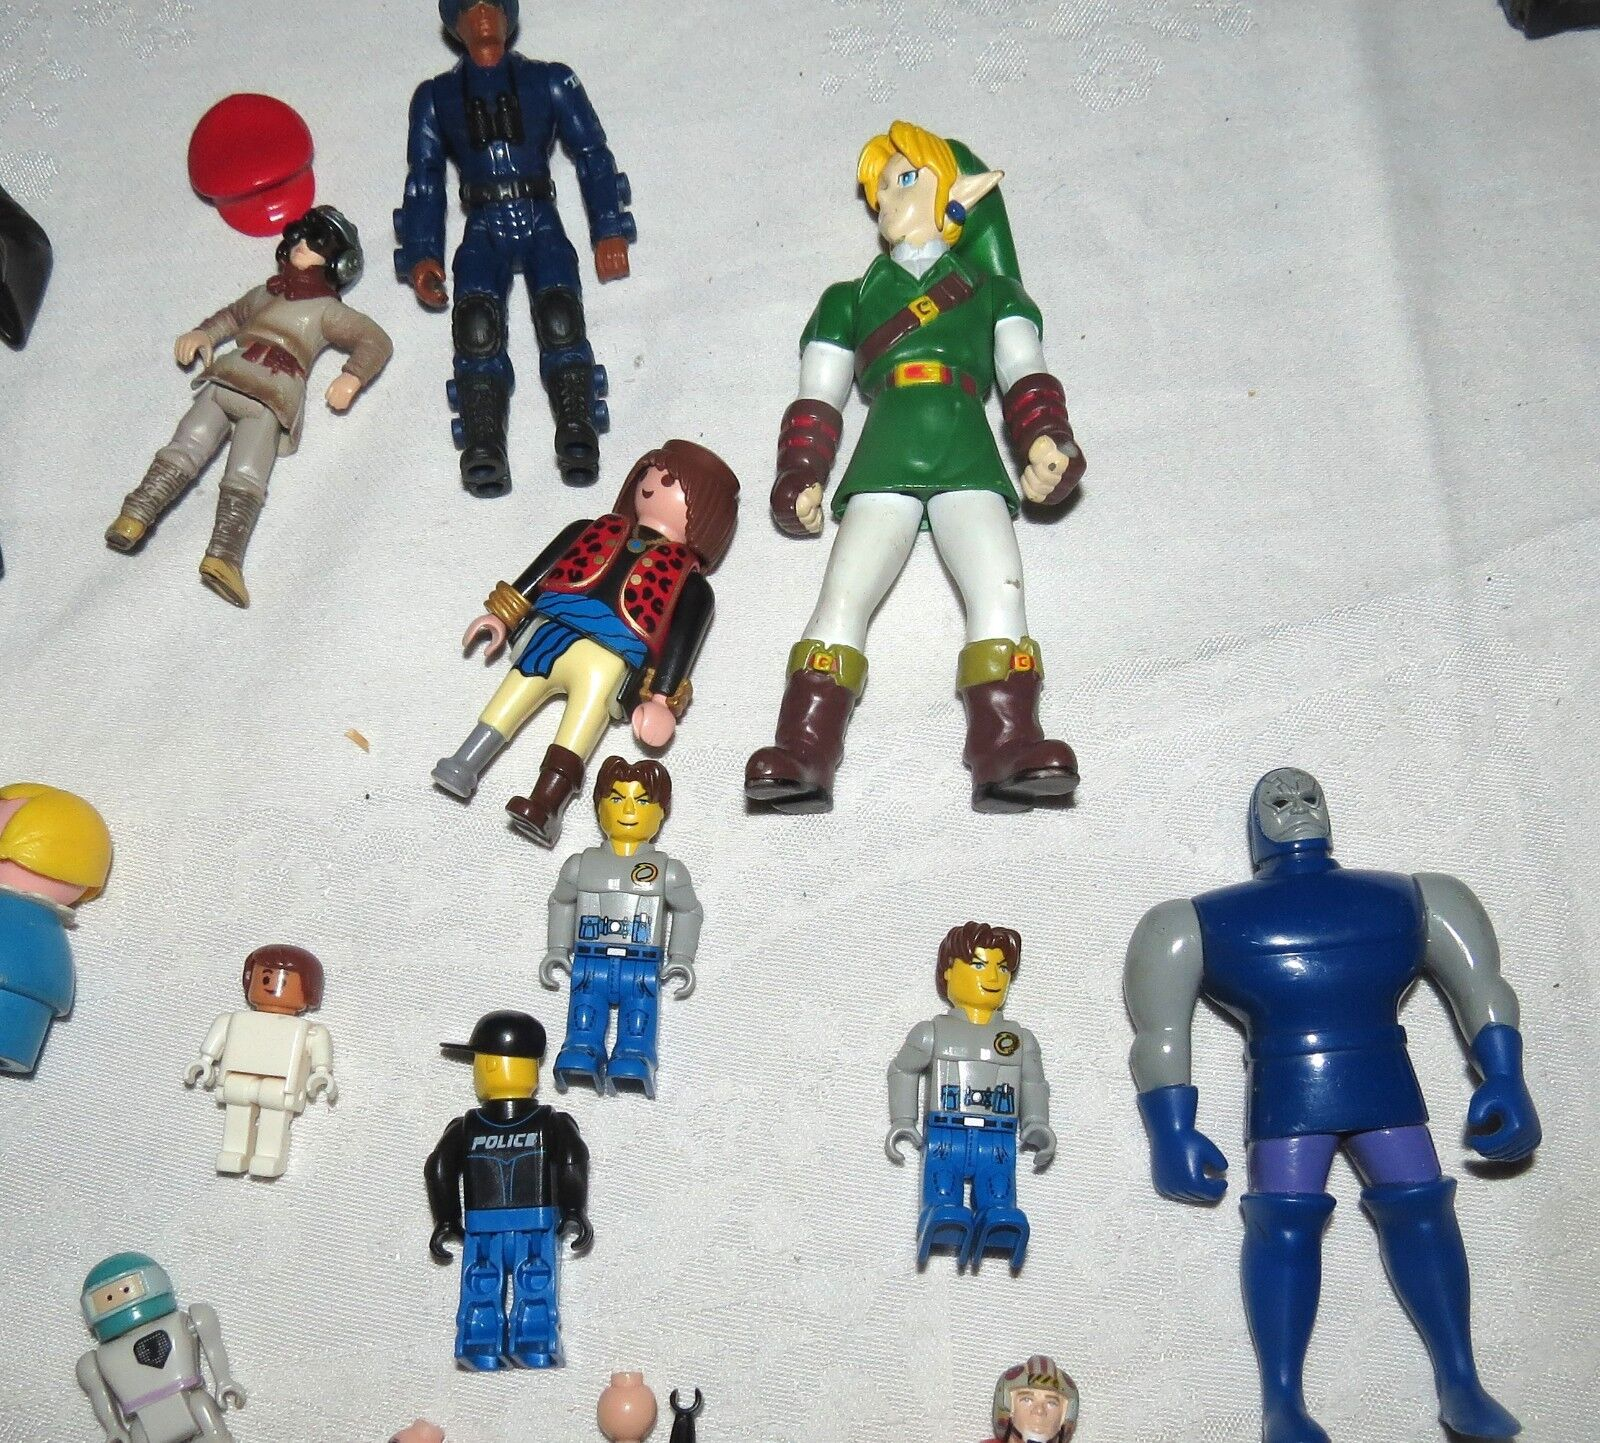 Mixed Group of About About About 50 People Figurines Sesame Street Lego Harry Potter more f2e331